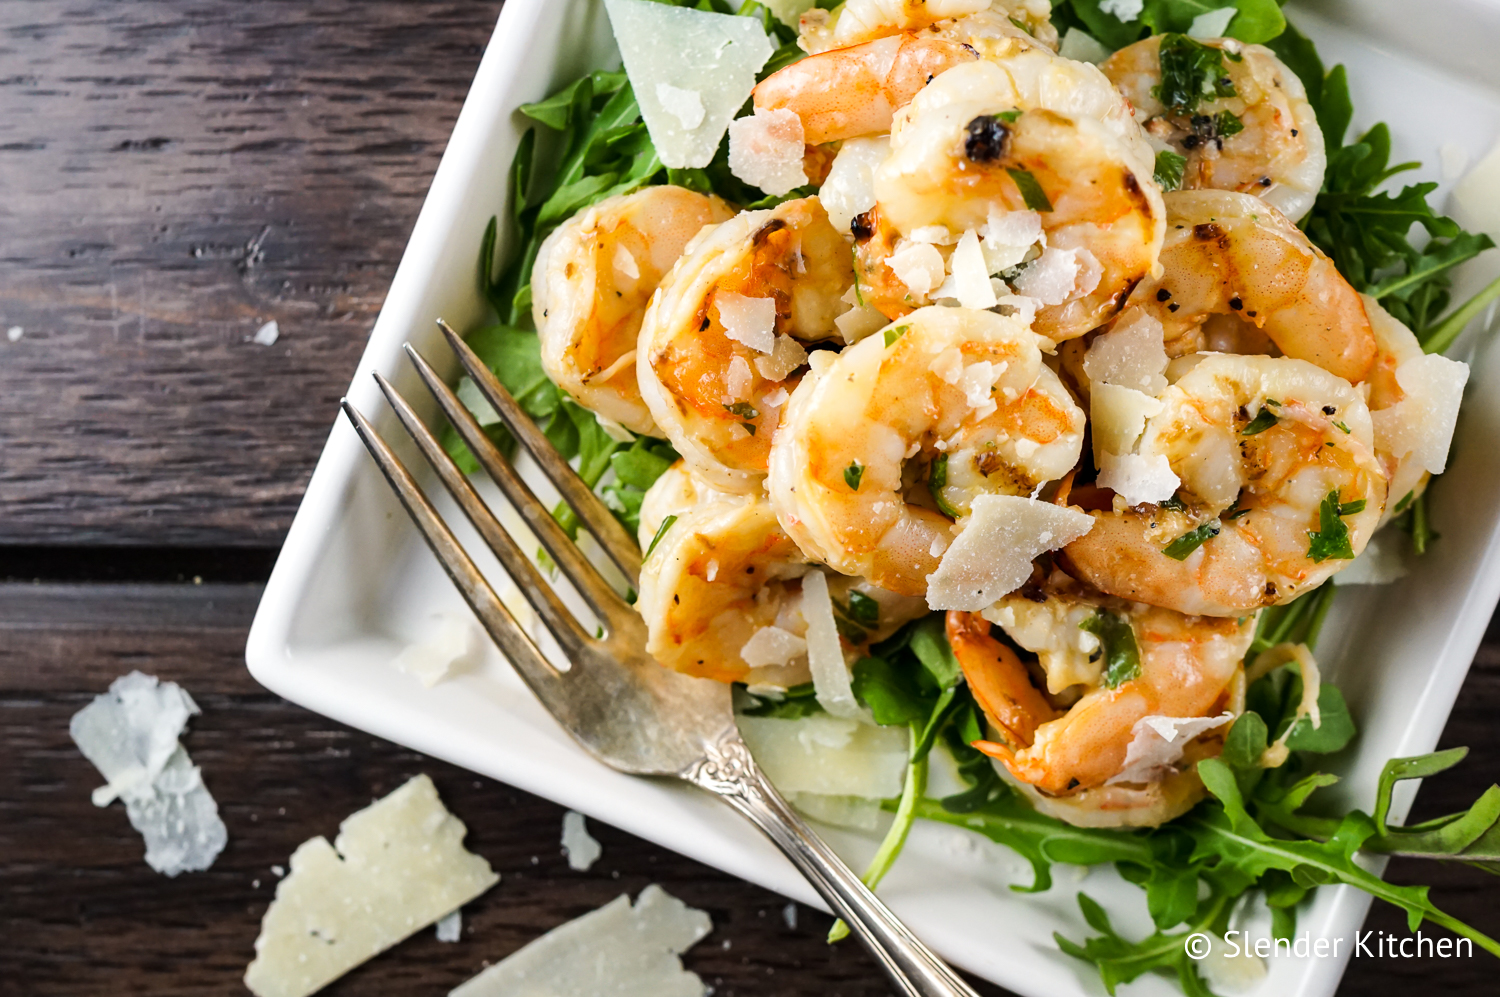 Garlic Parmesan Shrimp in a white bowl.